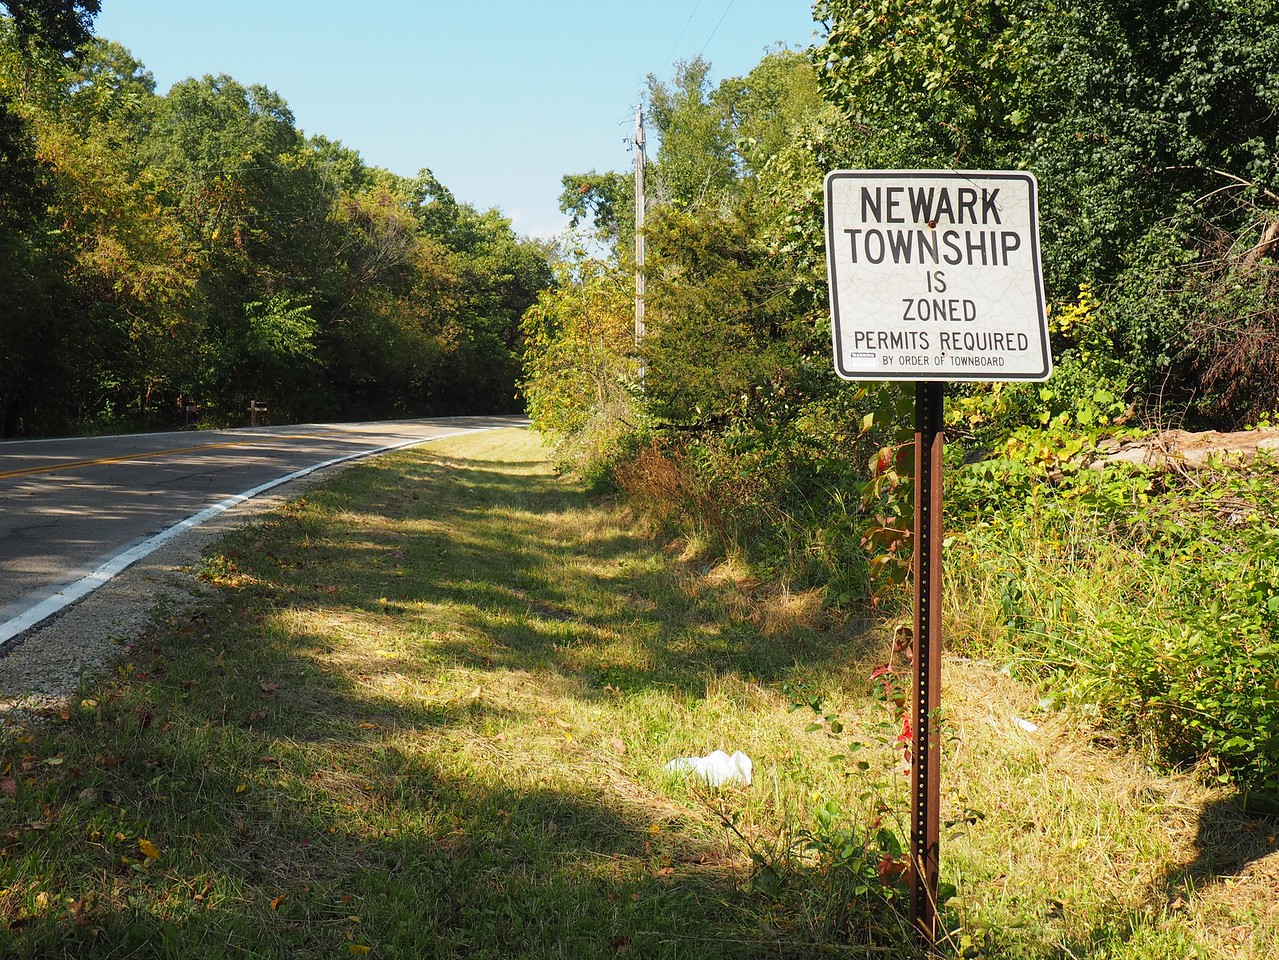 Newark Township is Zoned